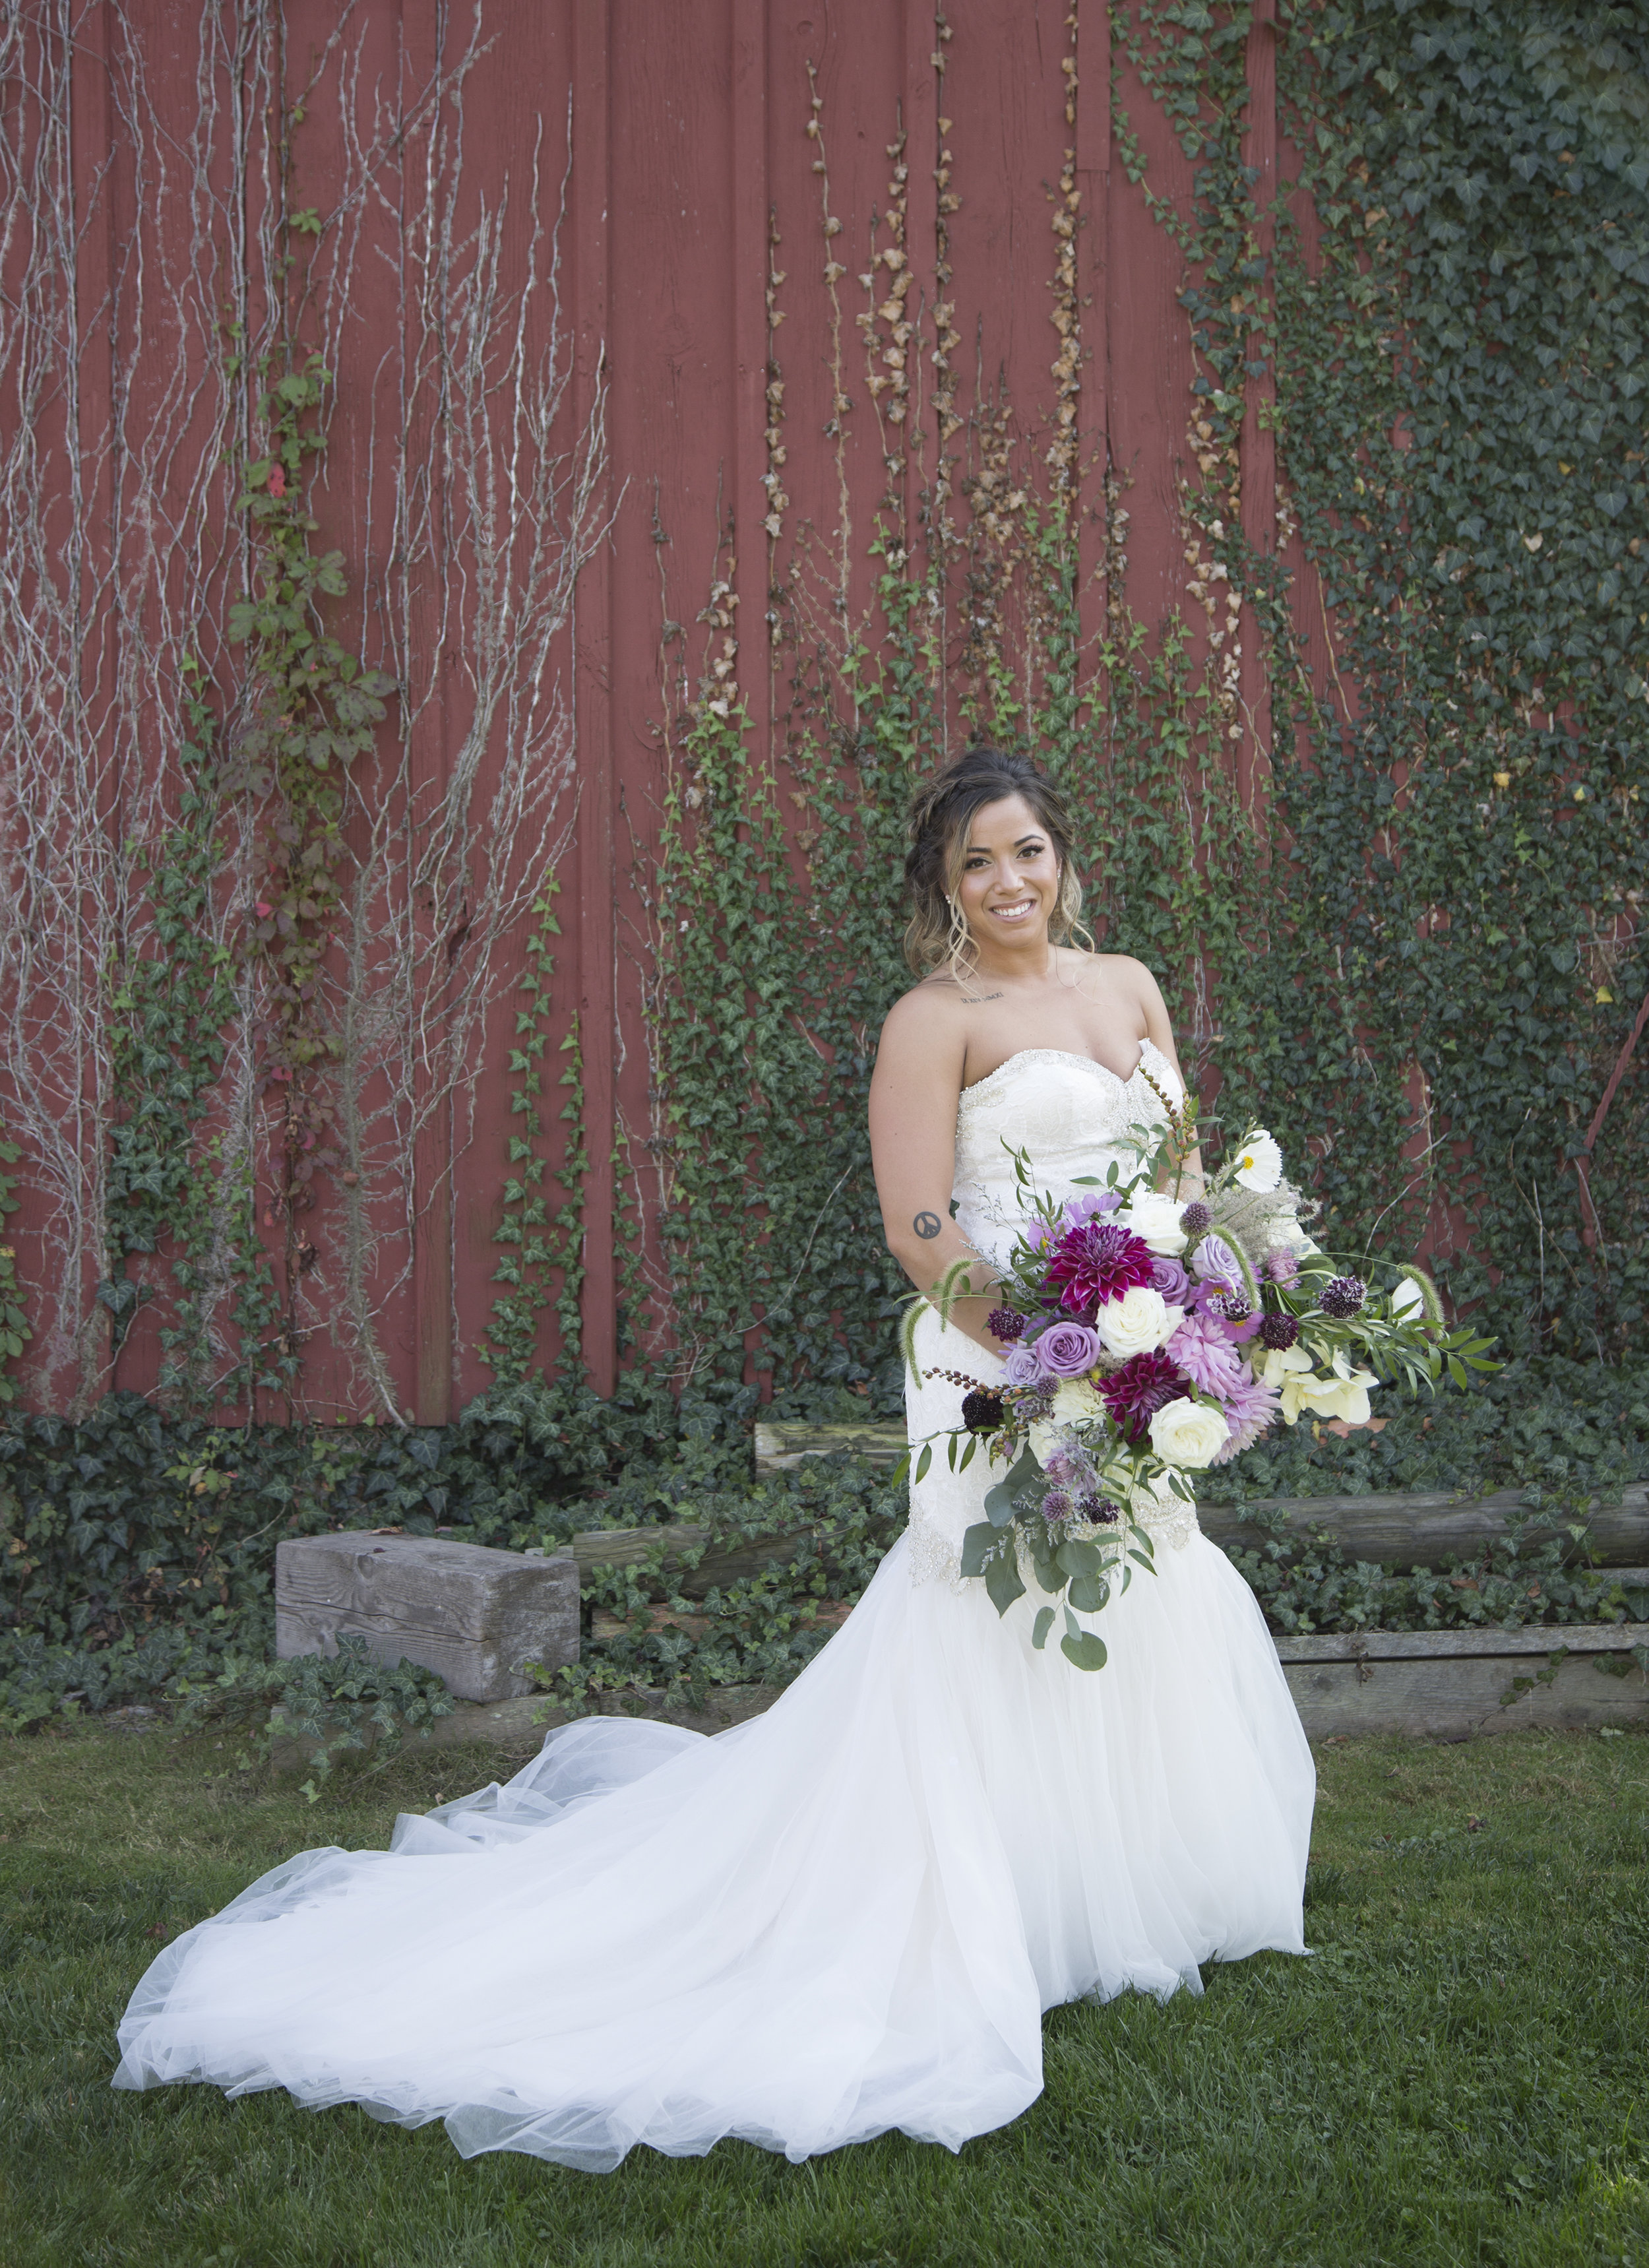 {photo by: Michelle Cox Photography}